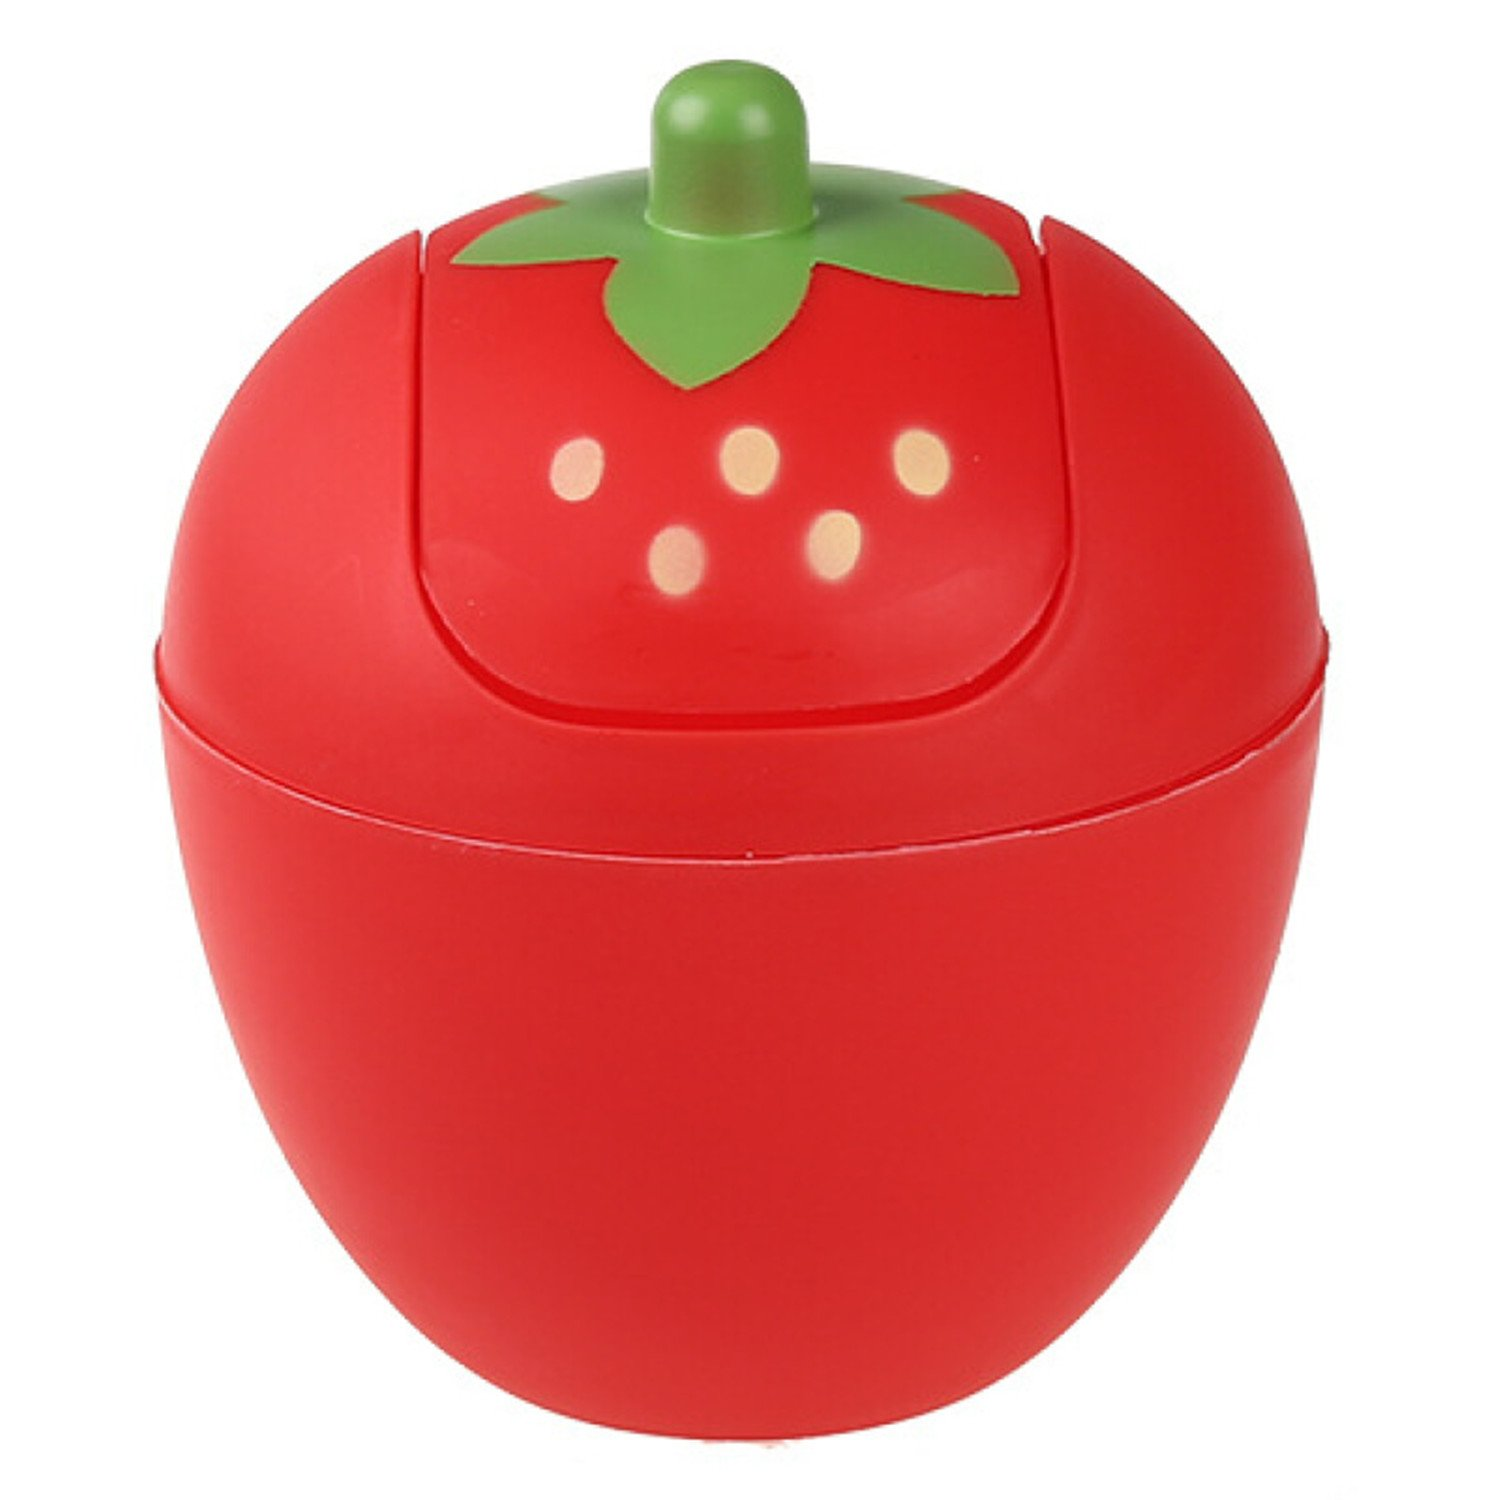 Cute Mini Waste Bins, Manafun Strawberry Desk Trash Can Roll Cover Wastebasket, Food Organizer for Office, Room, Desk, Bathroom (Red)